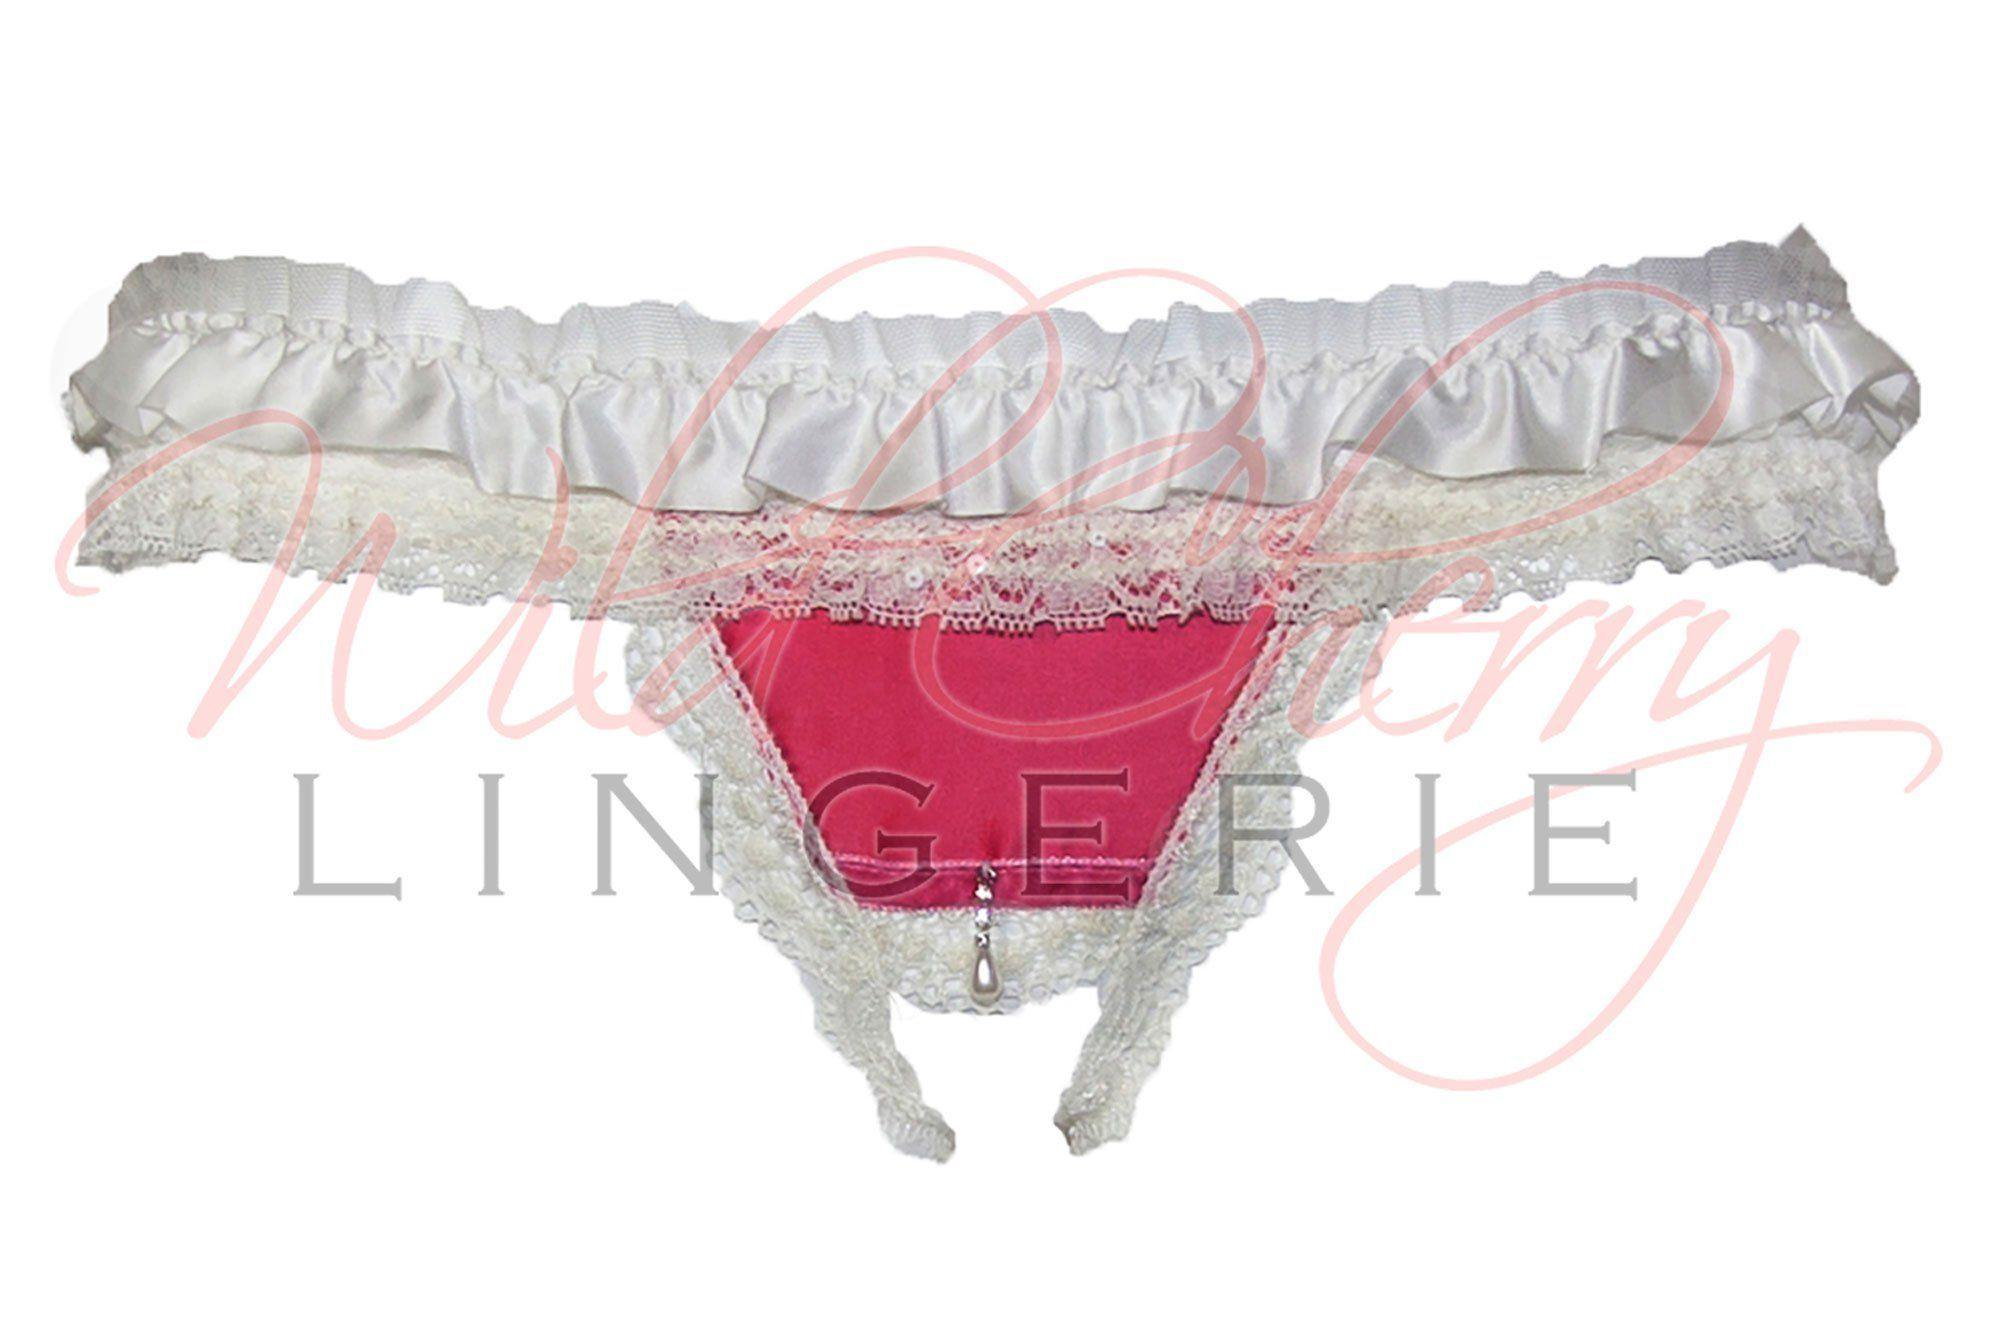 Andrea White Collection Open Crotch G-String Panties VIPA Lingerie, Panties, VIPA Lingerie - Wild Cherry Lingerie